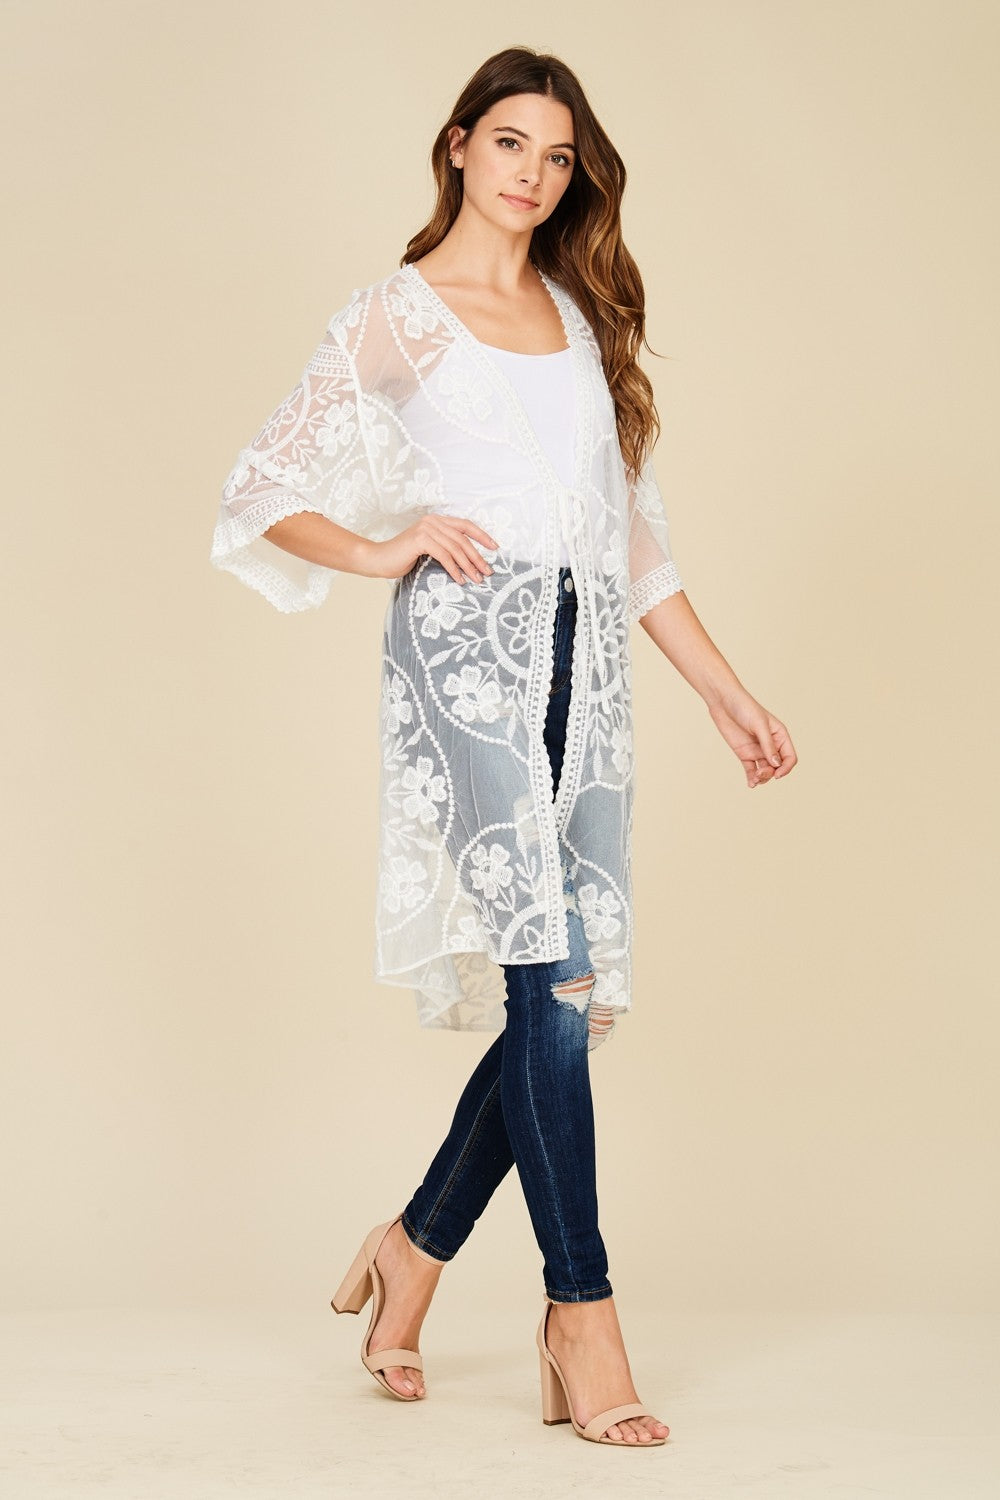 Front/side full view young woman wearing white sheer mesh cardigan with floral embroidery